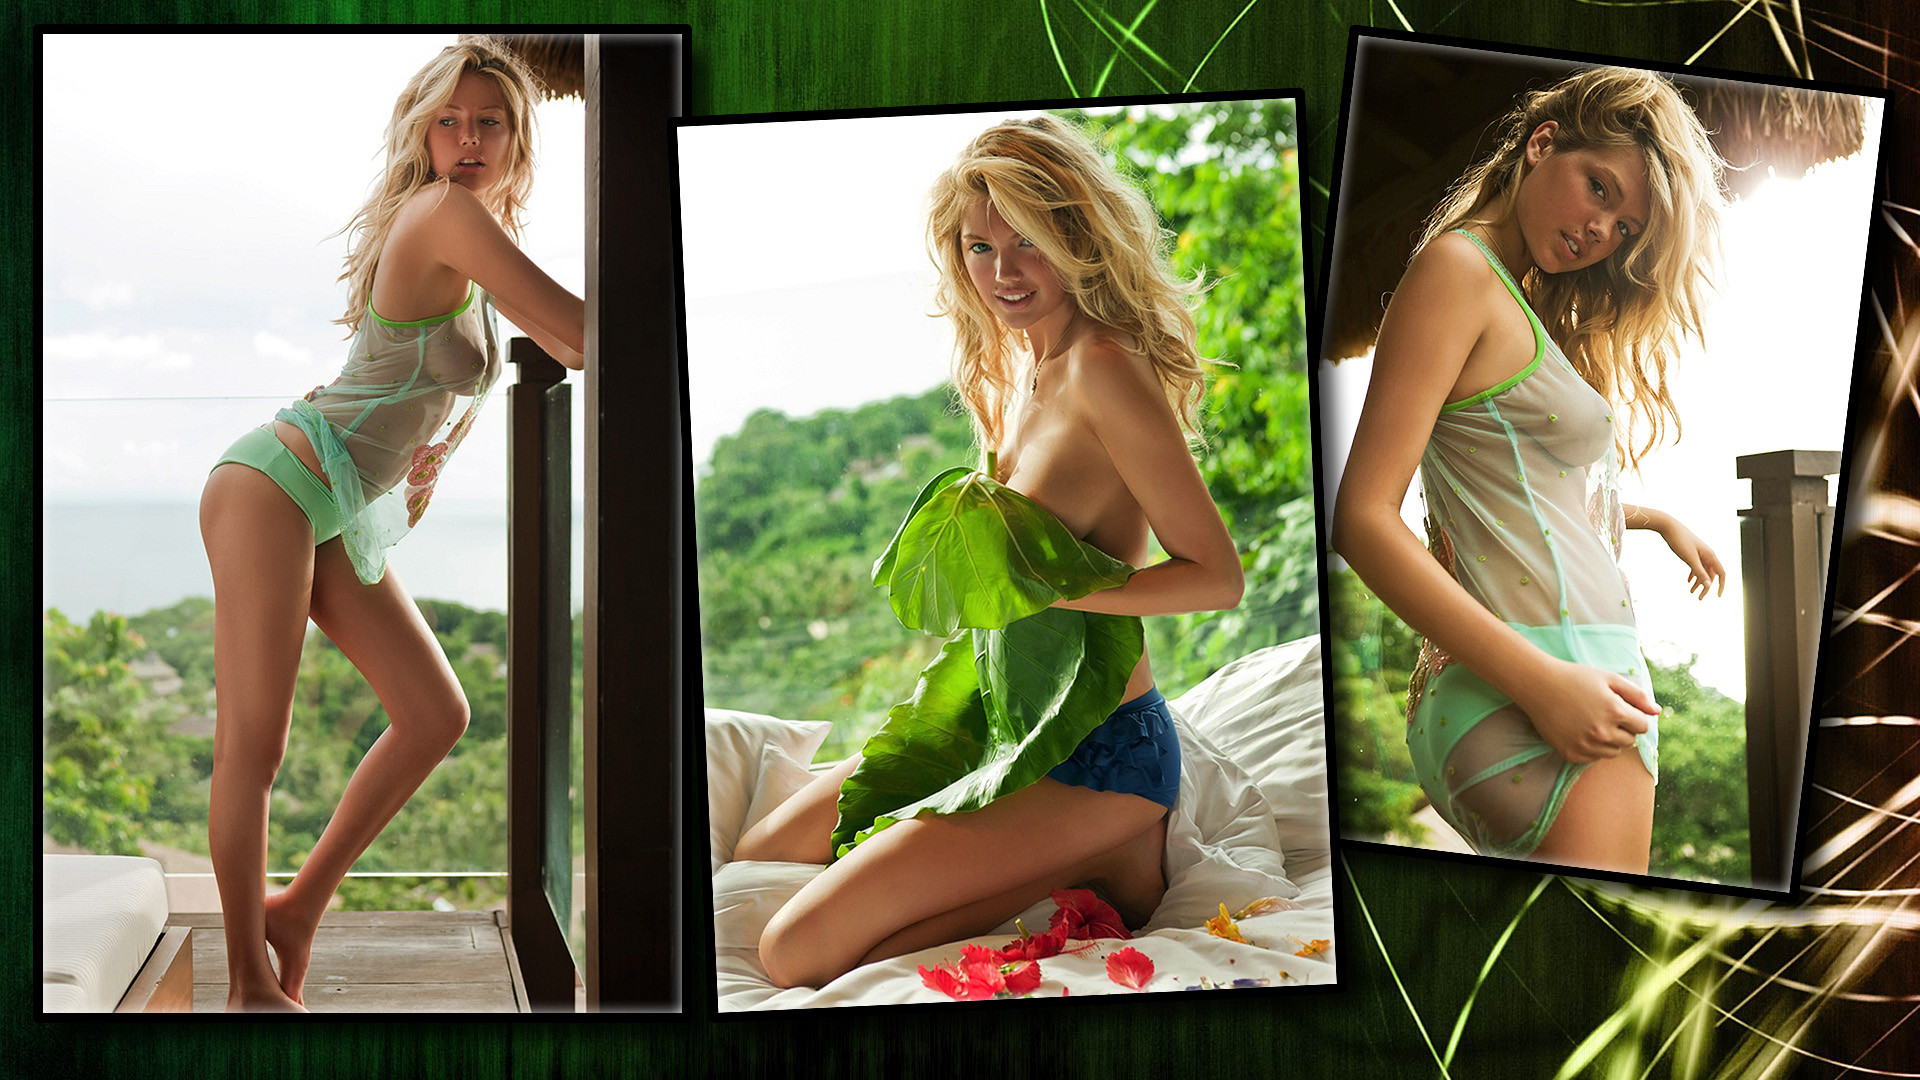 Kate Upton Wallpaper 8